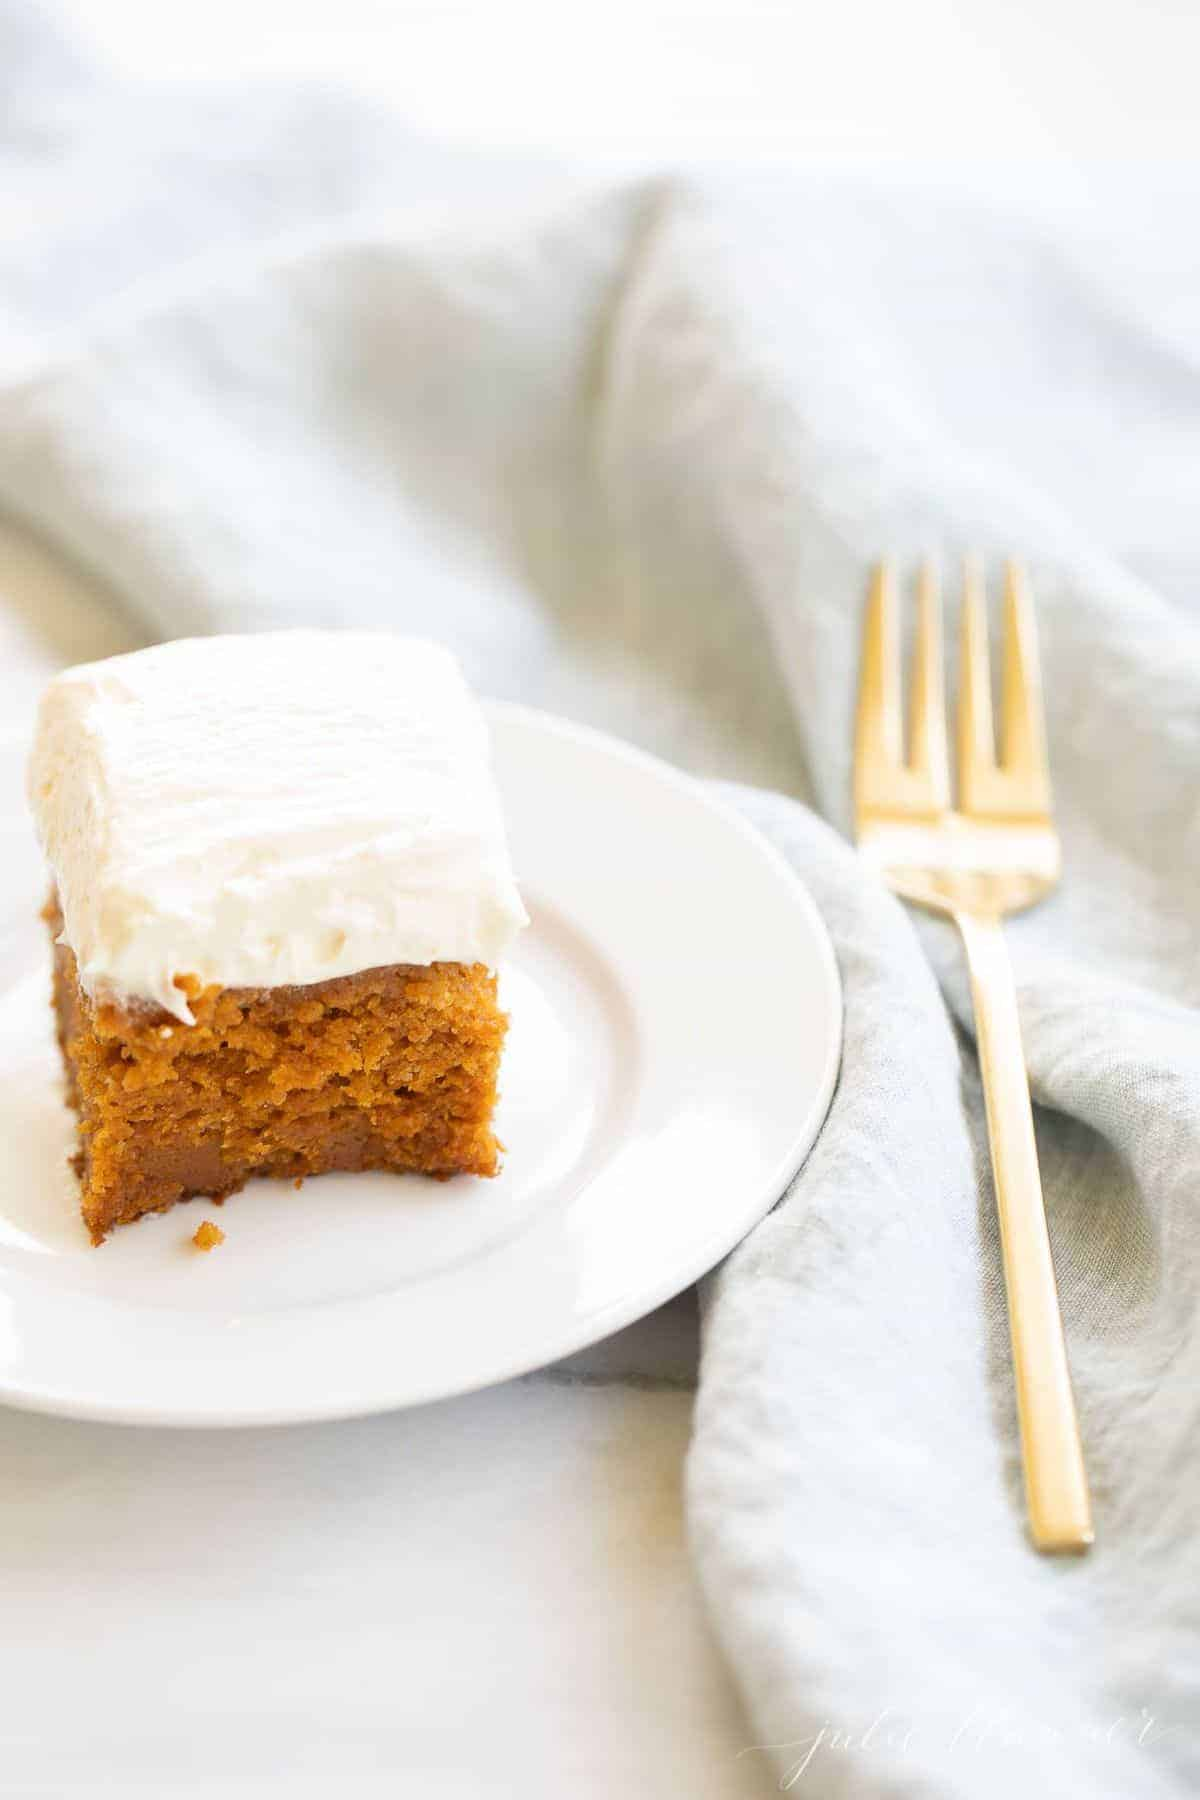 A slice of pumpkin cake on a white plate. Blue linen napkin and gold fork to the side.